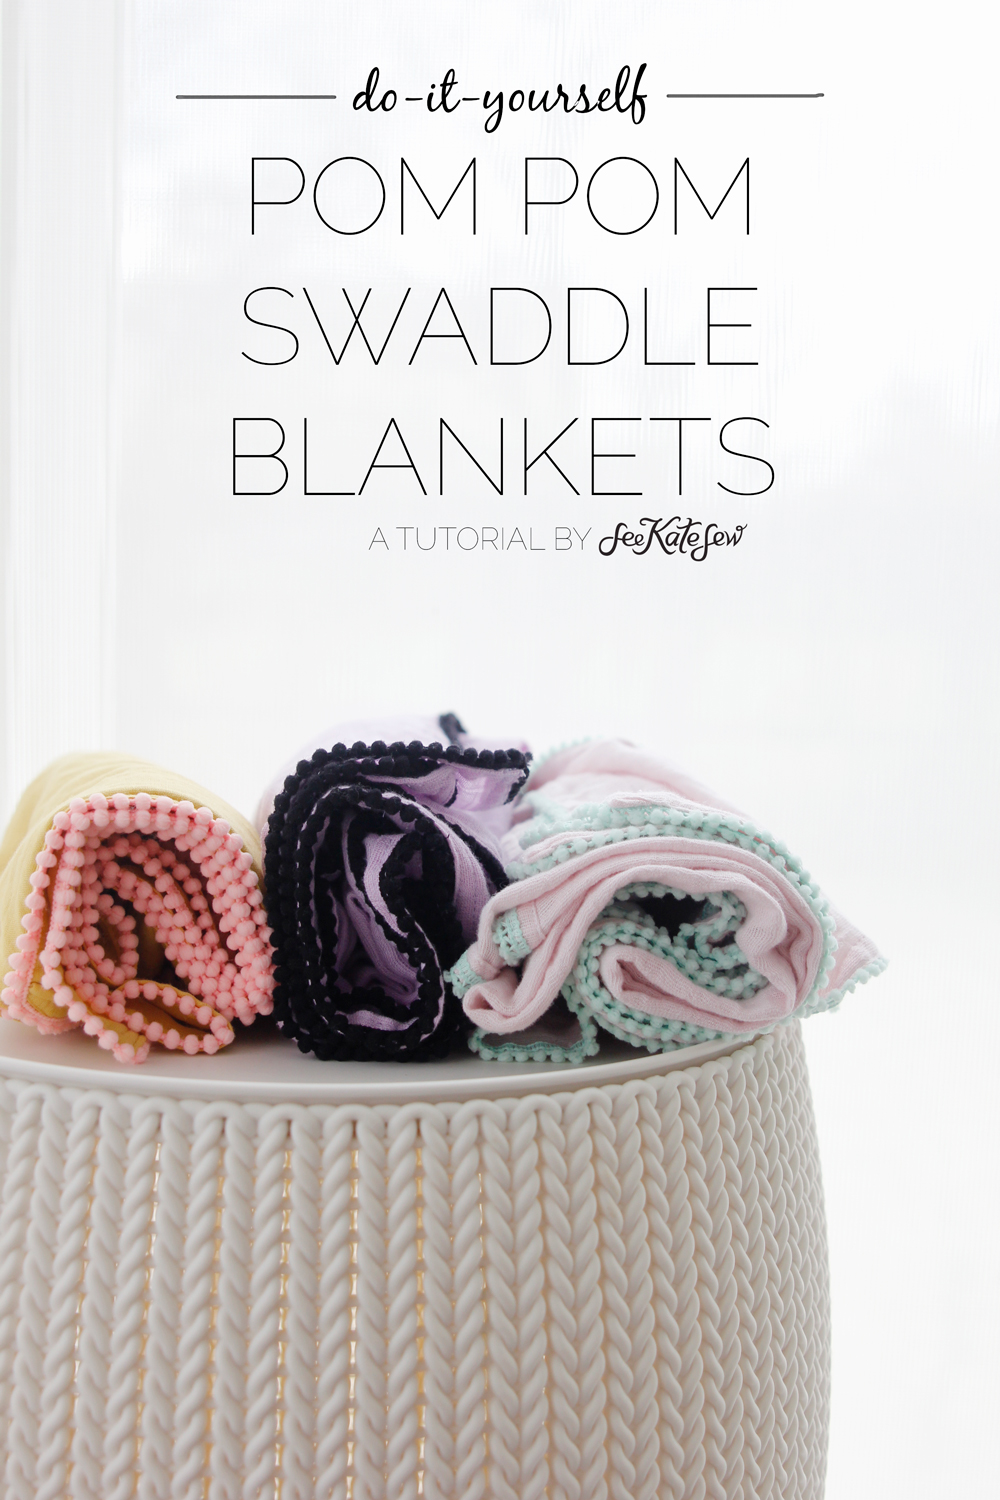 Pom Pom Swaddle Blanket Tutorial by See Kate Sew